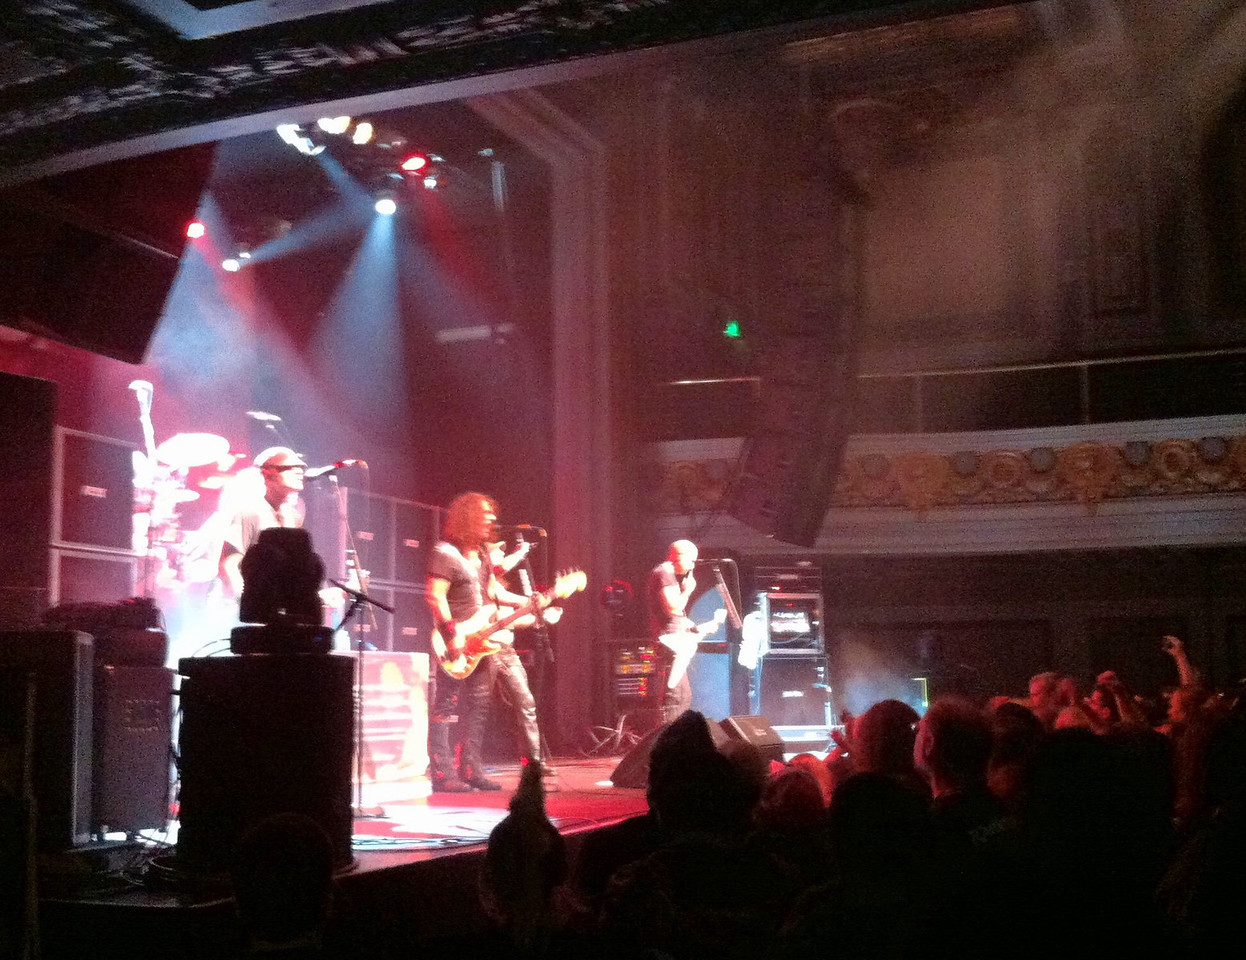 Accept at Regency Ballroom. Old school heavy metal!